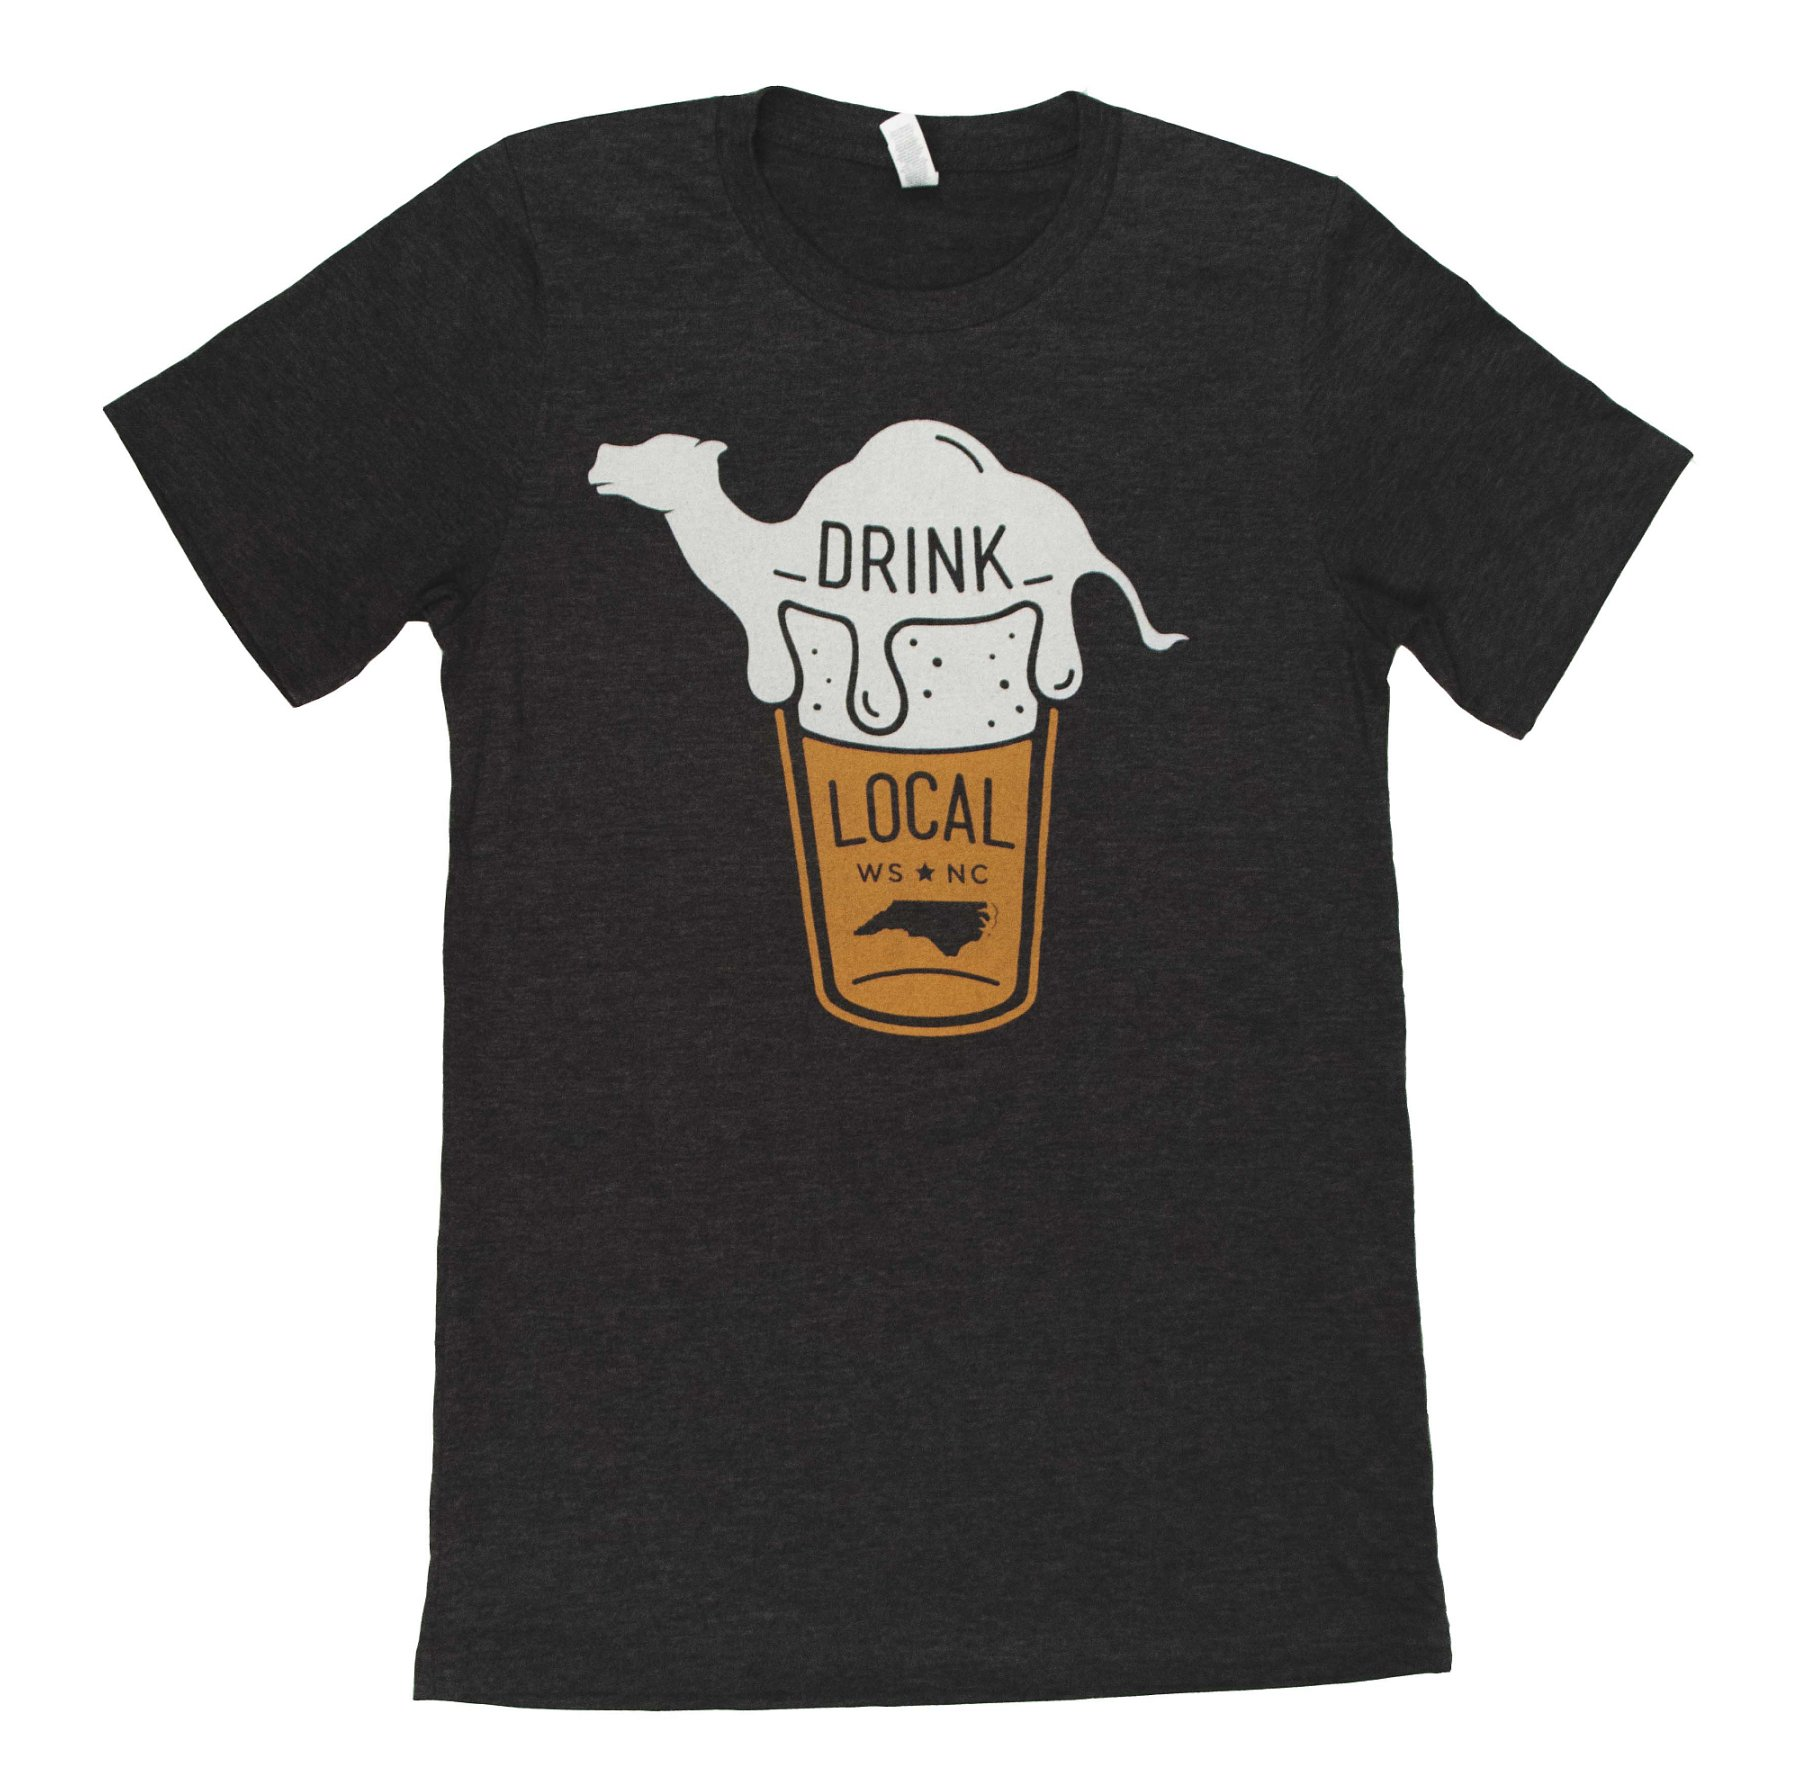 Winston Salem Drink Local Tee Shirt Design Archives